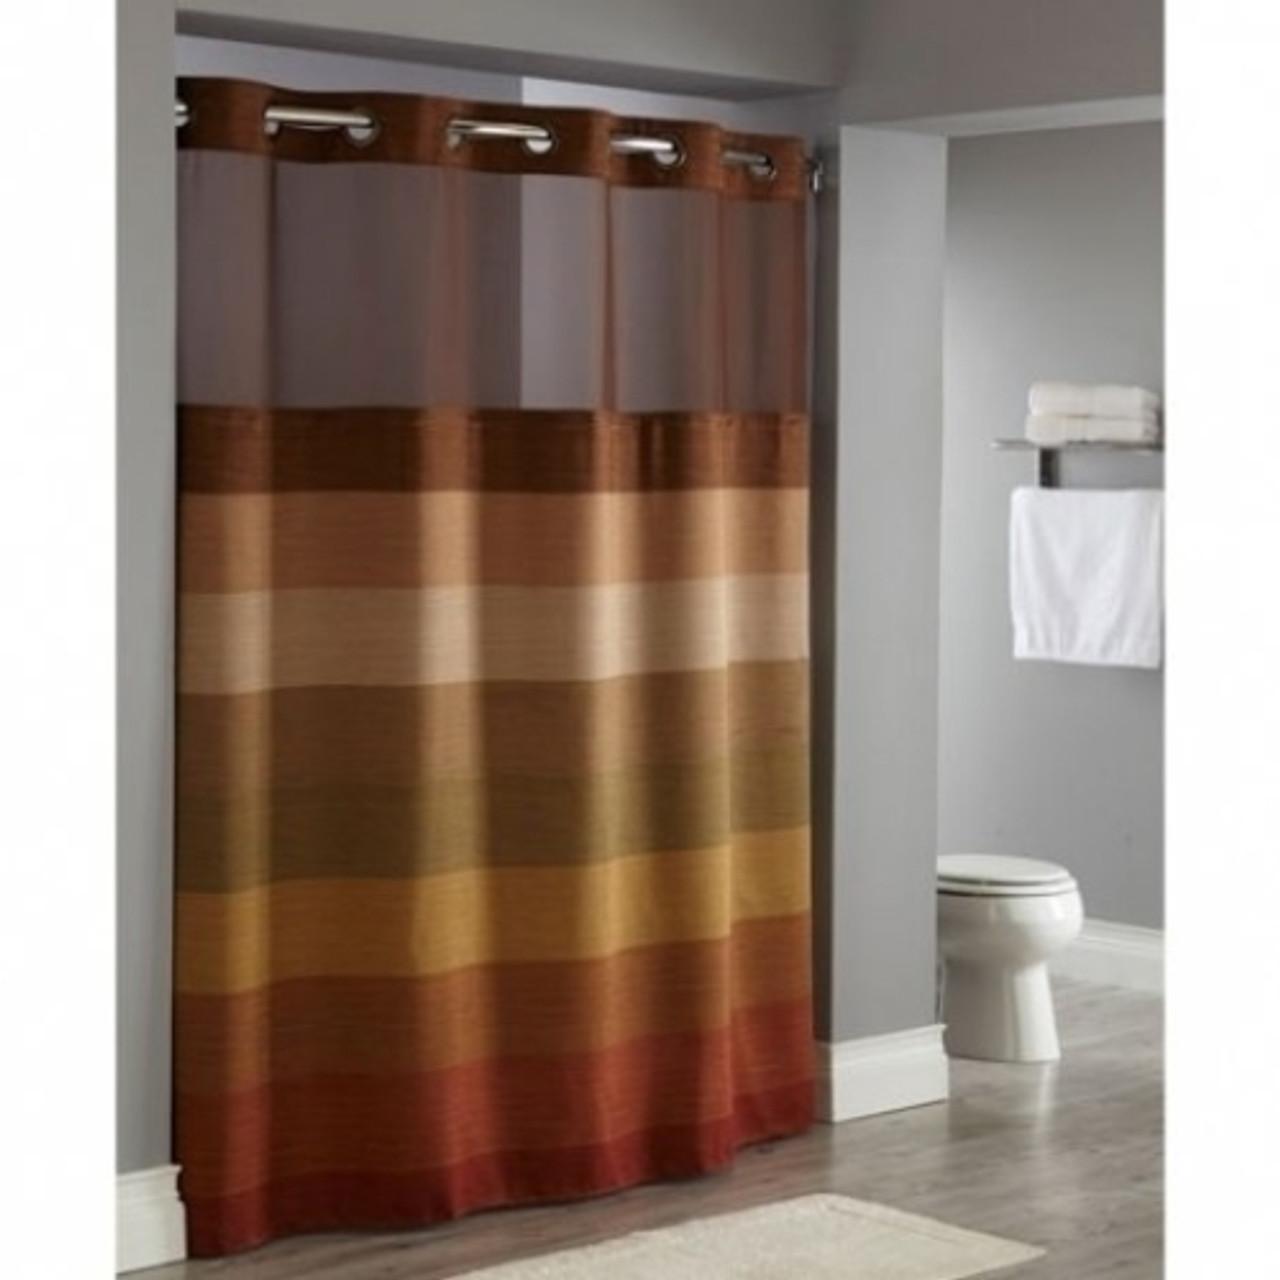 Stratus Window Hookless Shower Curtain HooklessShower